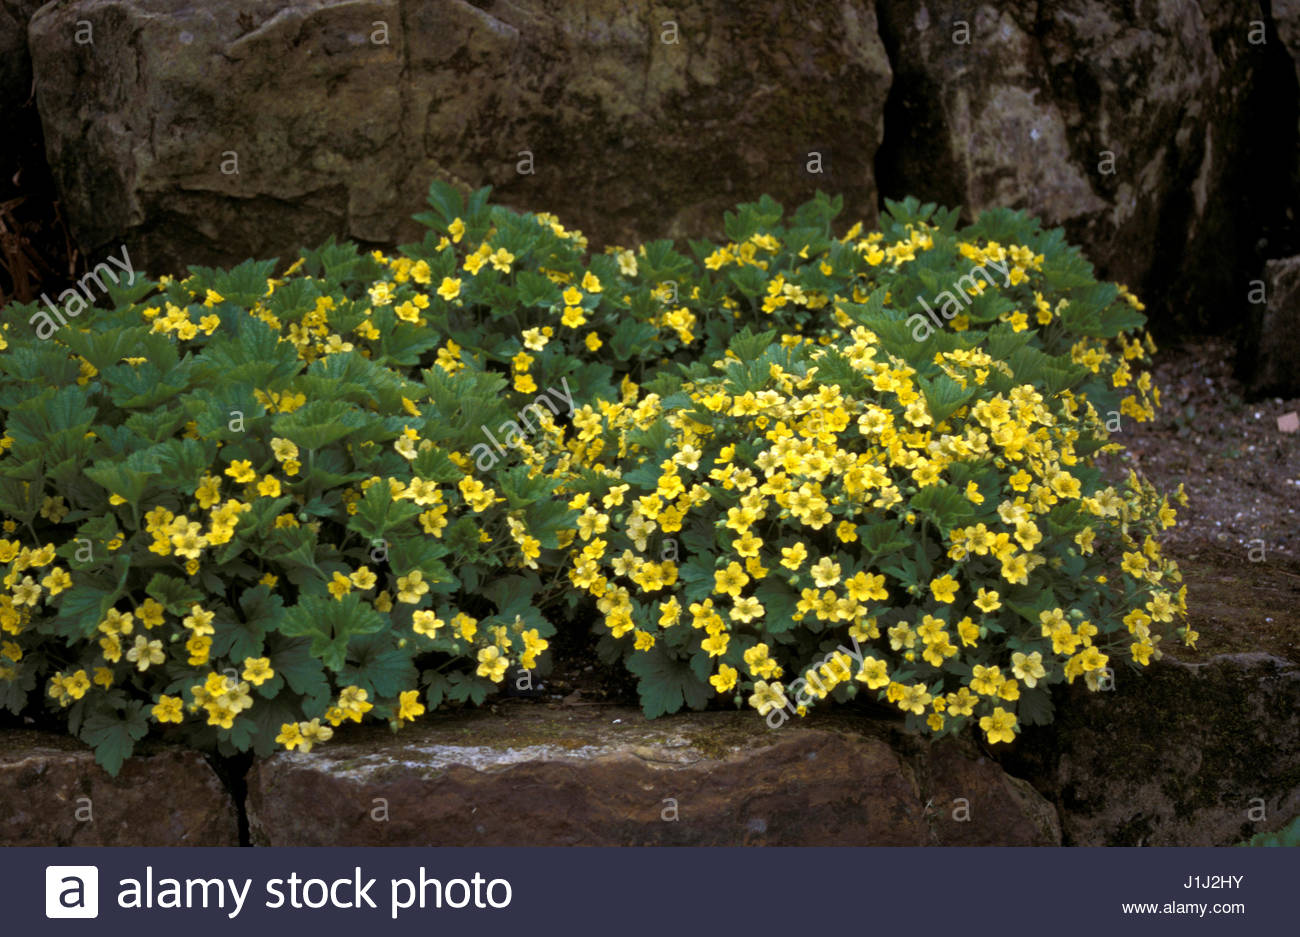 Waldsteinia Geoides Evergreen Perennial Ground Cover Yellow Flowers